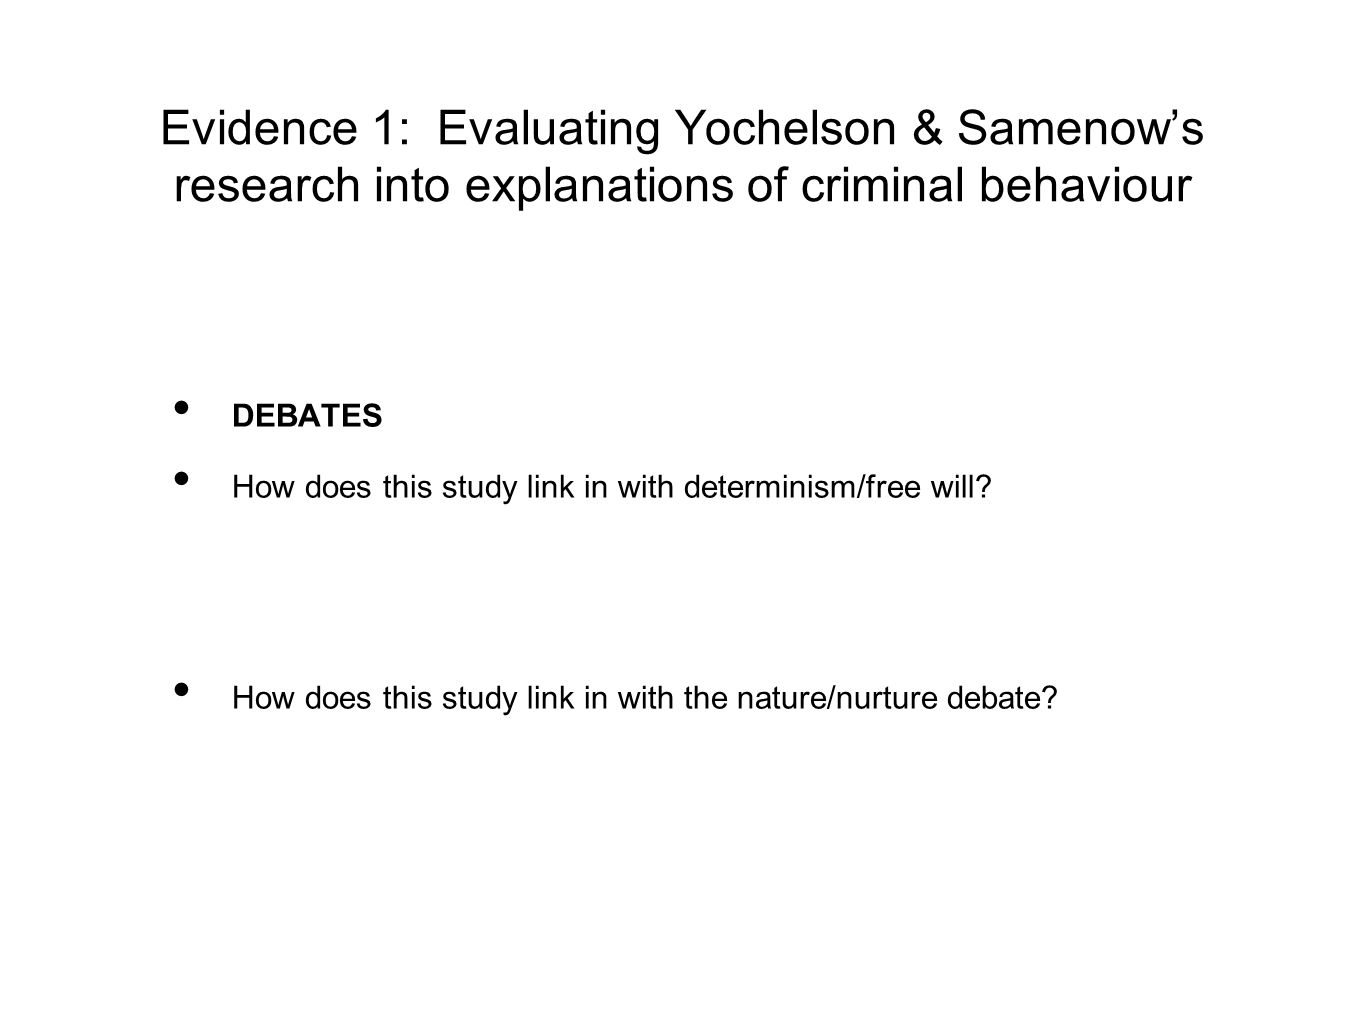 Evidence 1: Evaluating Yochelson & Samenow's research into explanations of criminal behaviour